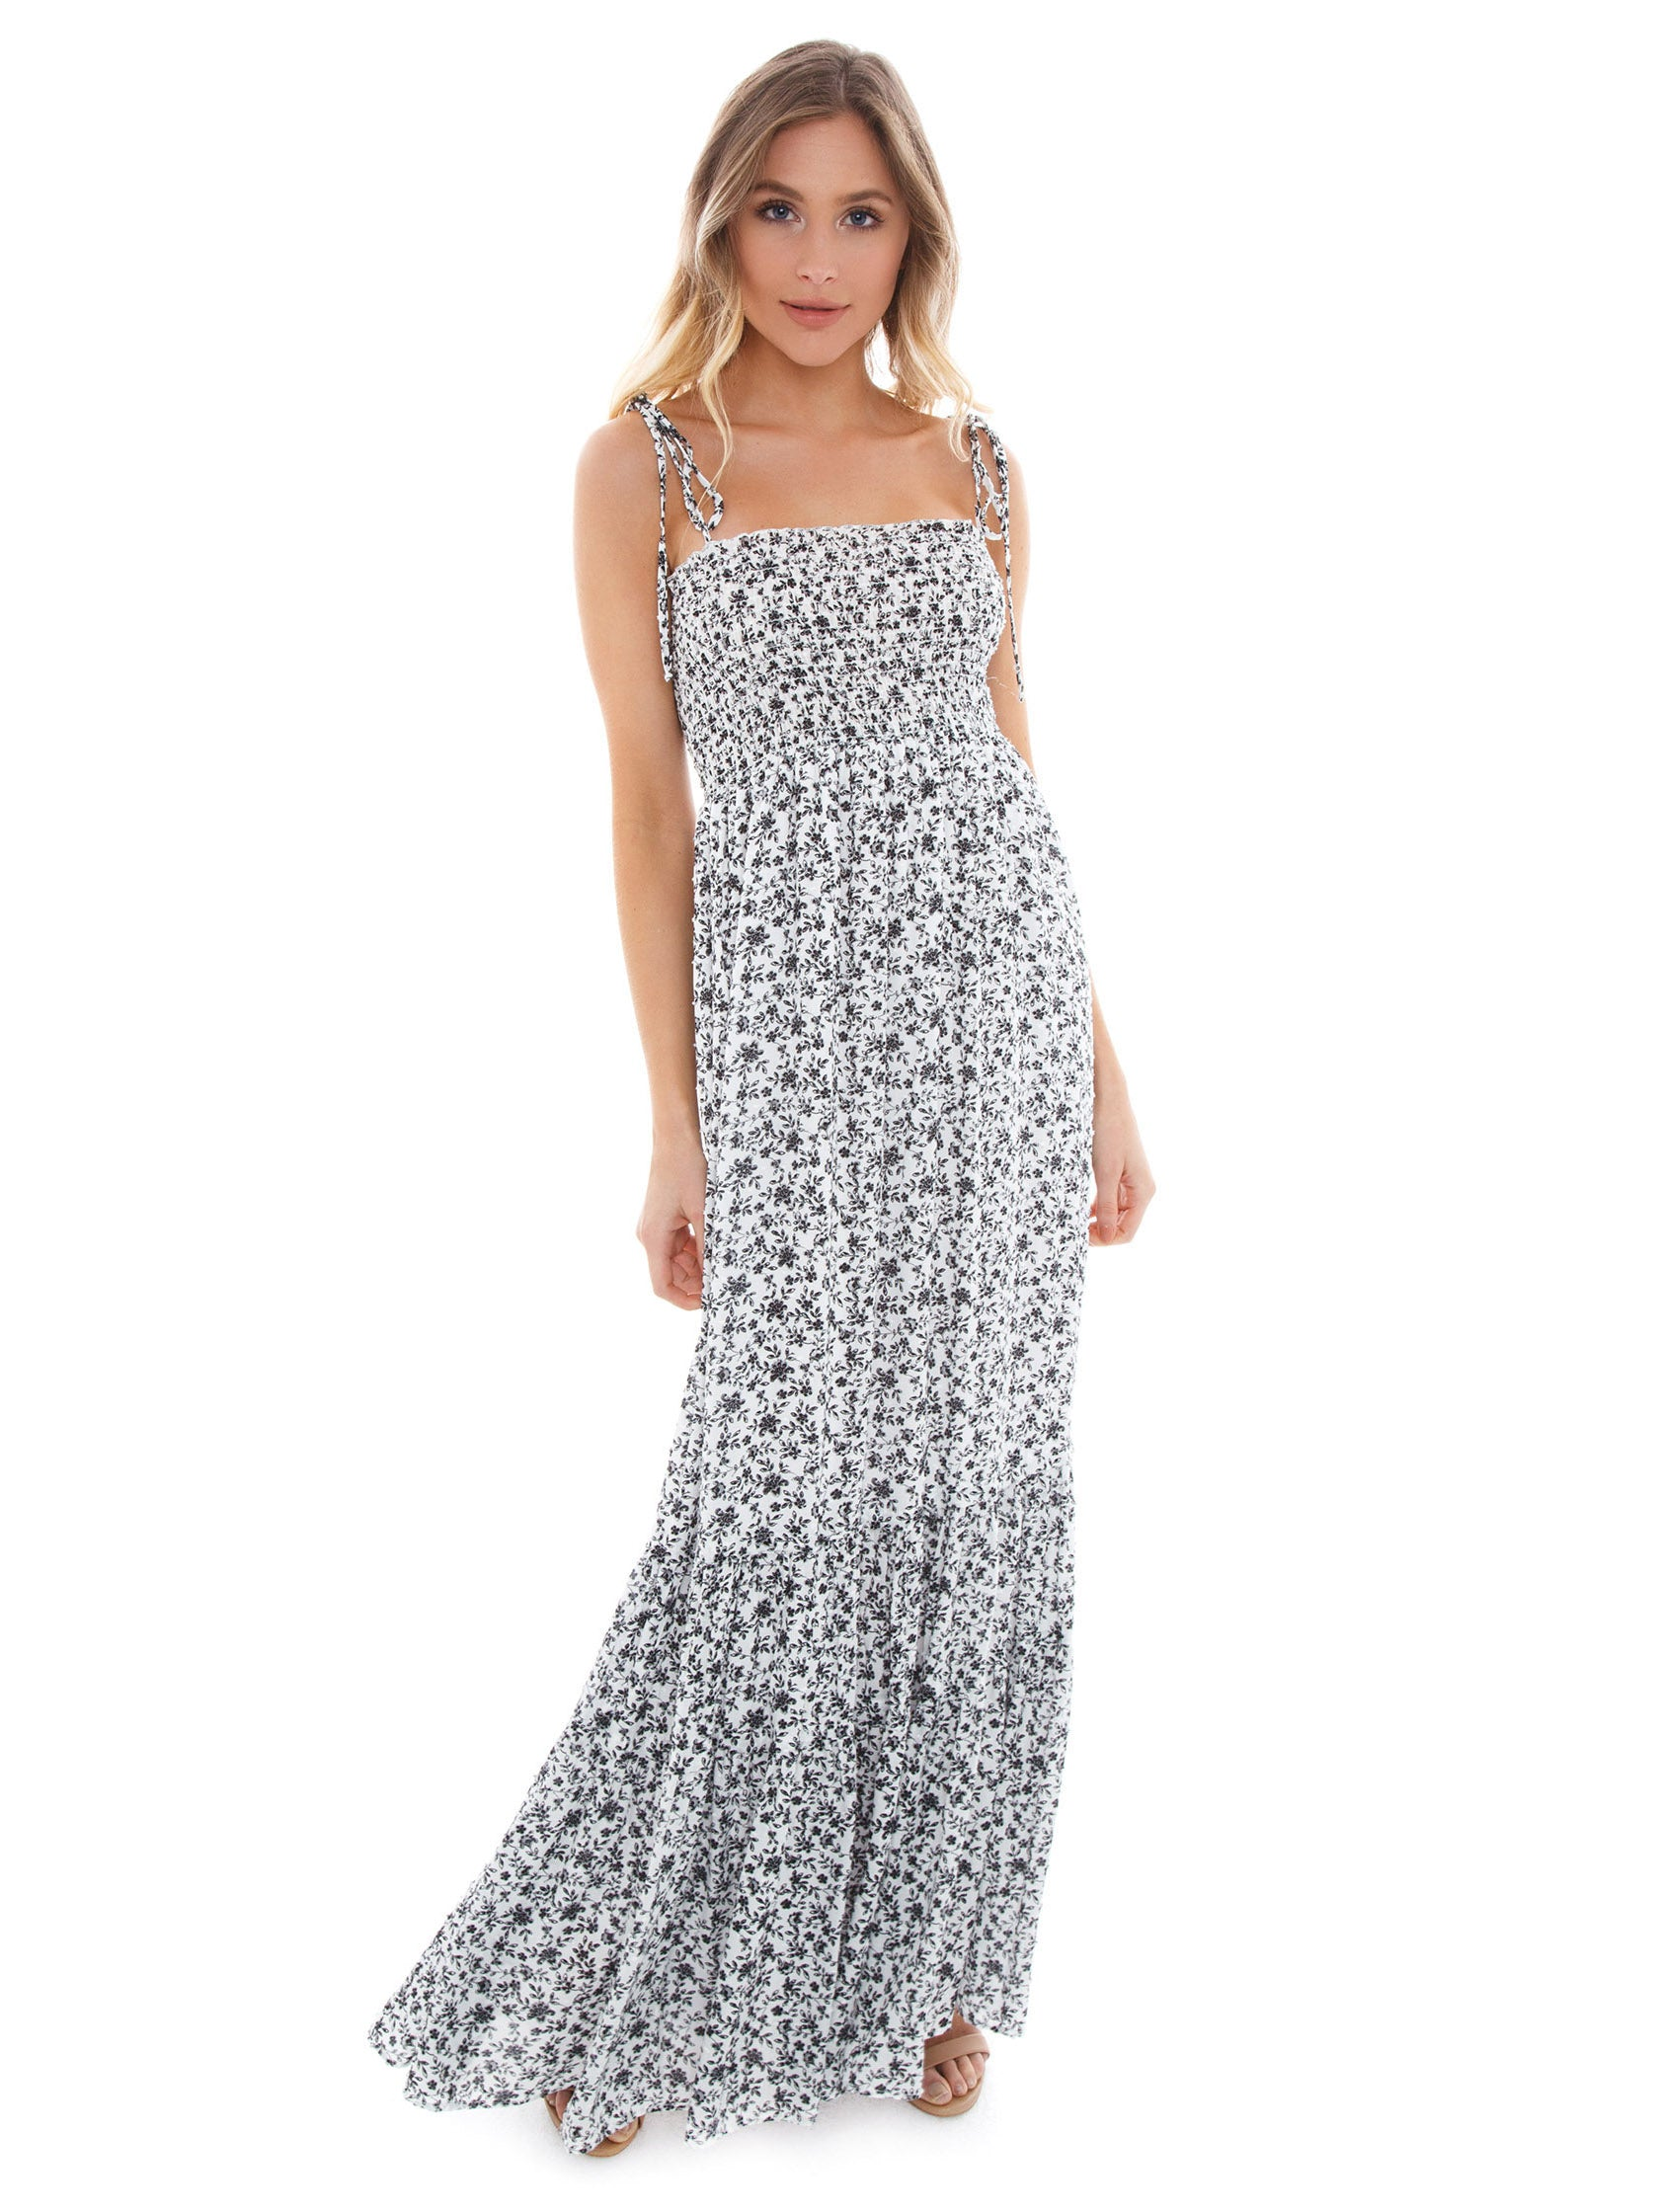 Girl outfit in a dress rental from Blue Life called Summer Breeze Maxi Dress